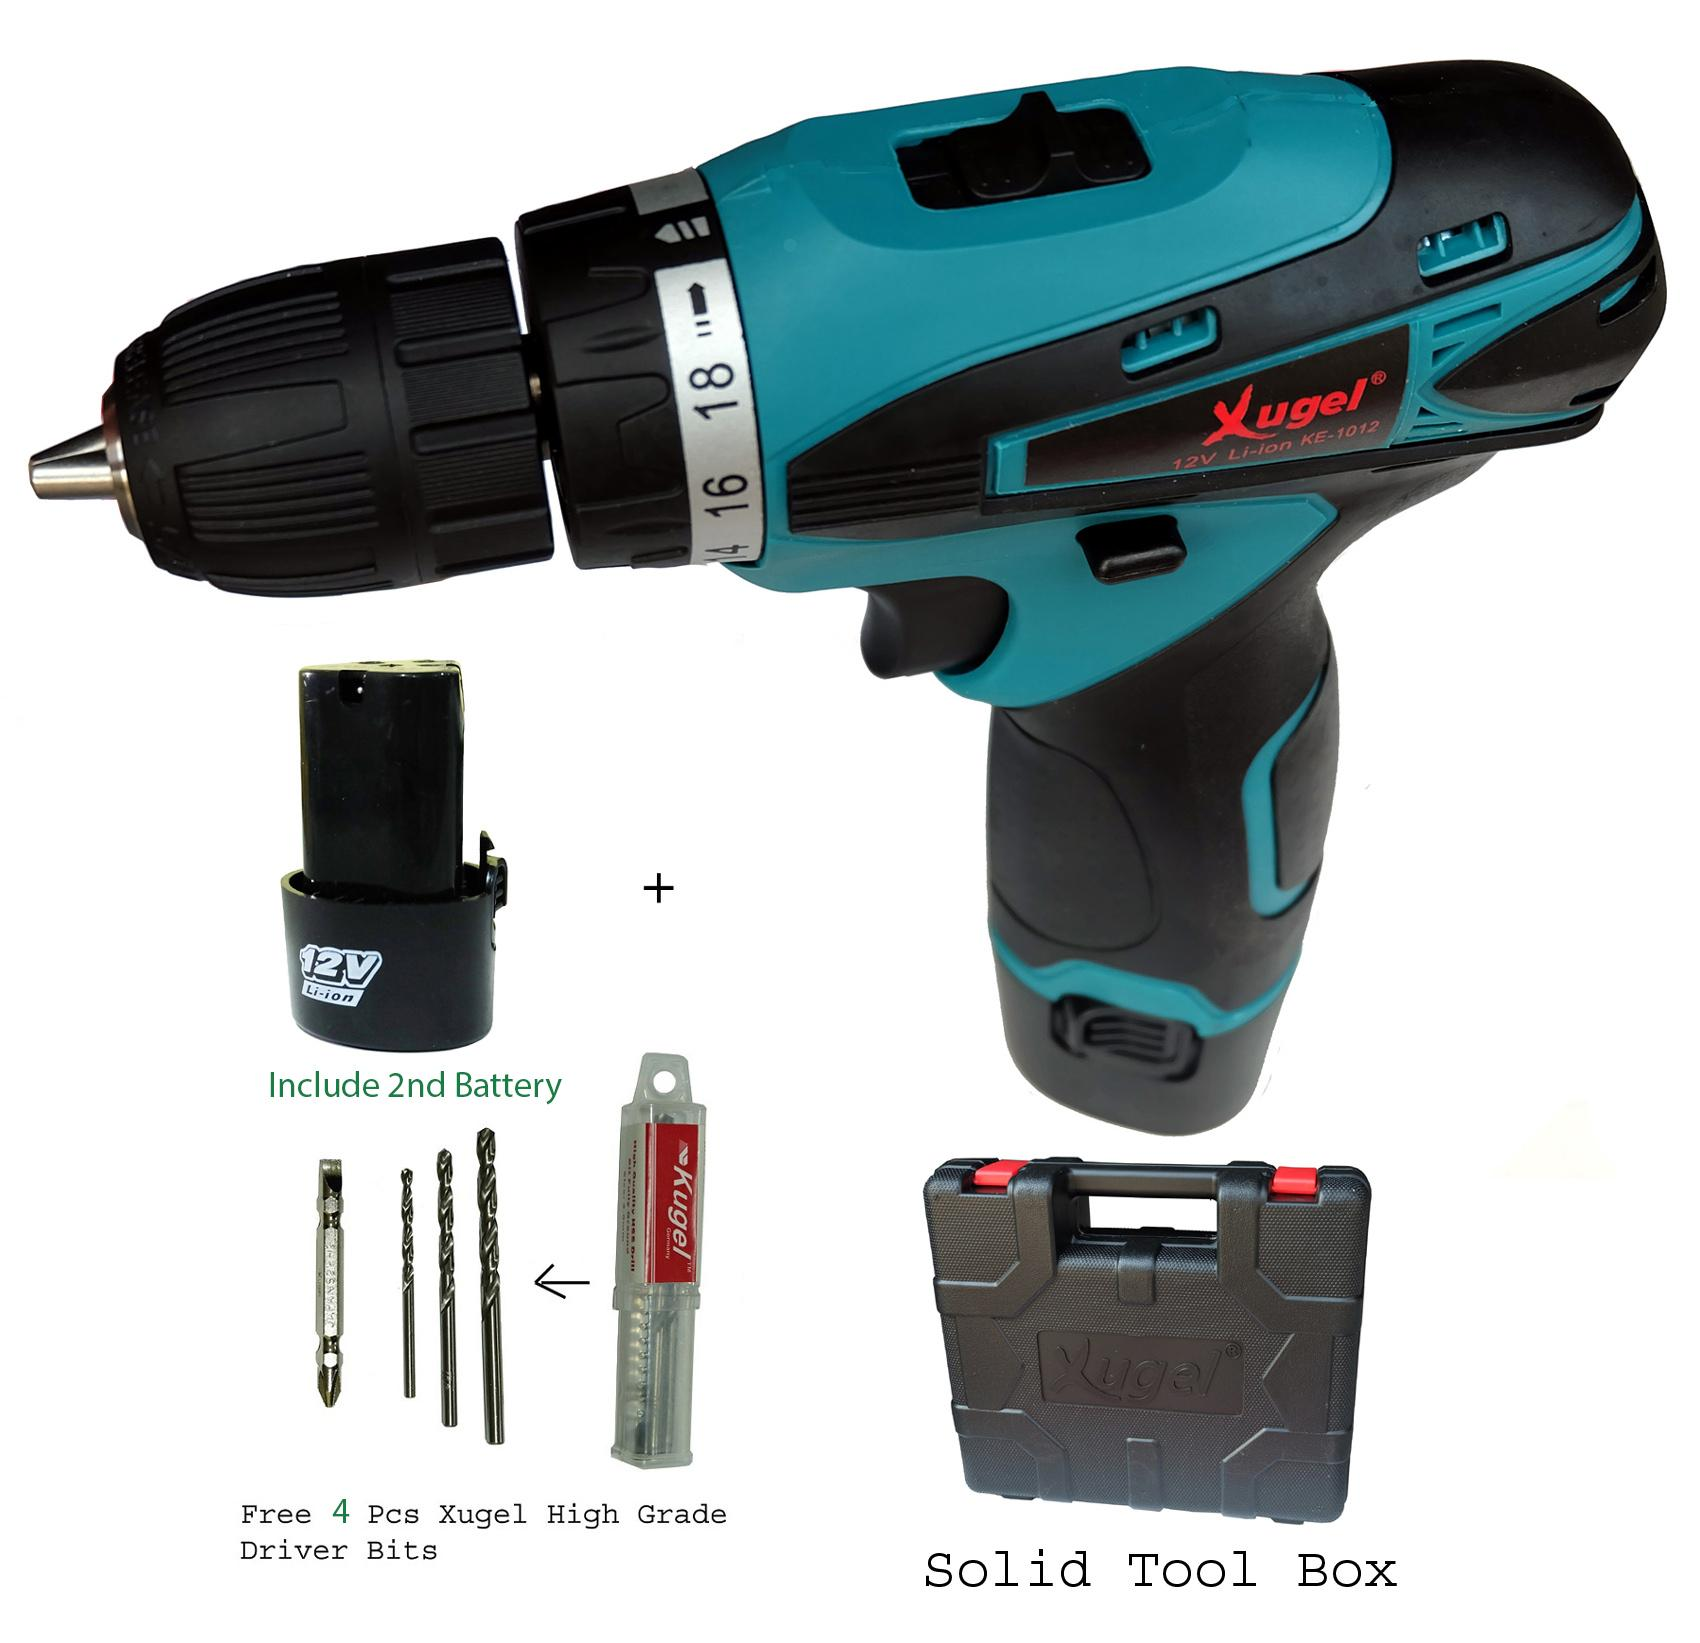 Xugel KE1012S 12V Lithium Battery Cordless Drill with 2 Battery, 4pcs Bits and carrying case